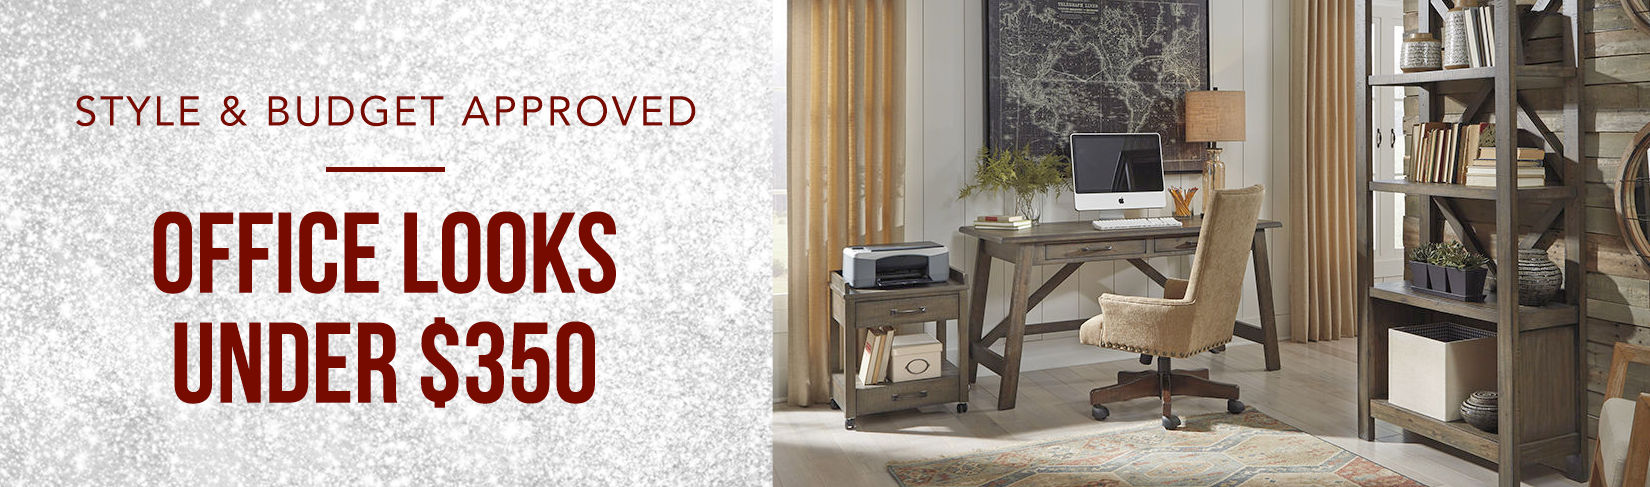 Style & Budget Approved Office Looks Under $350